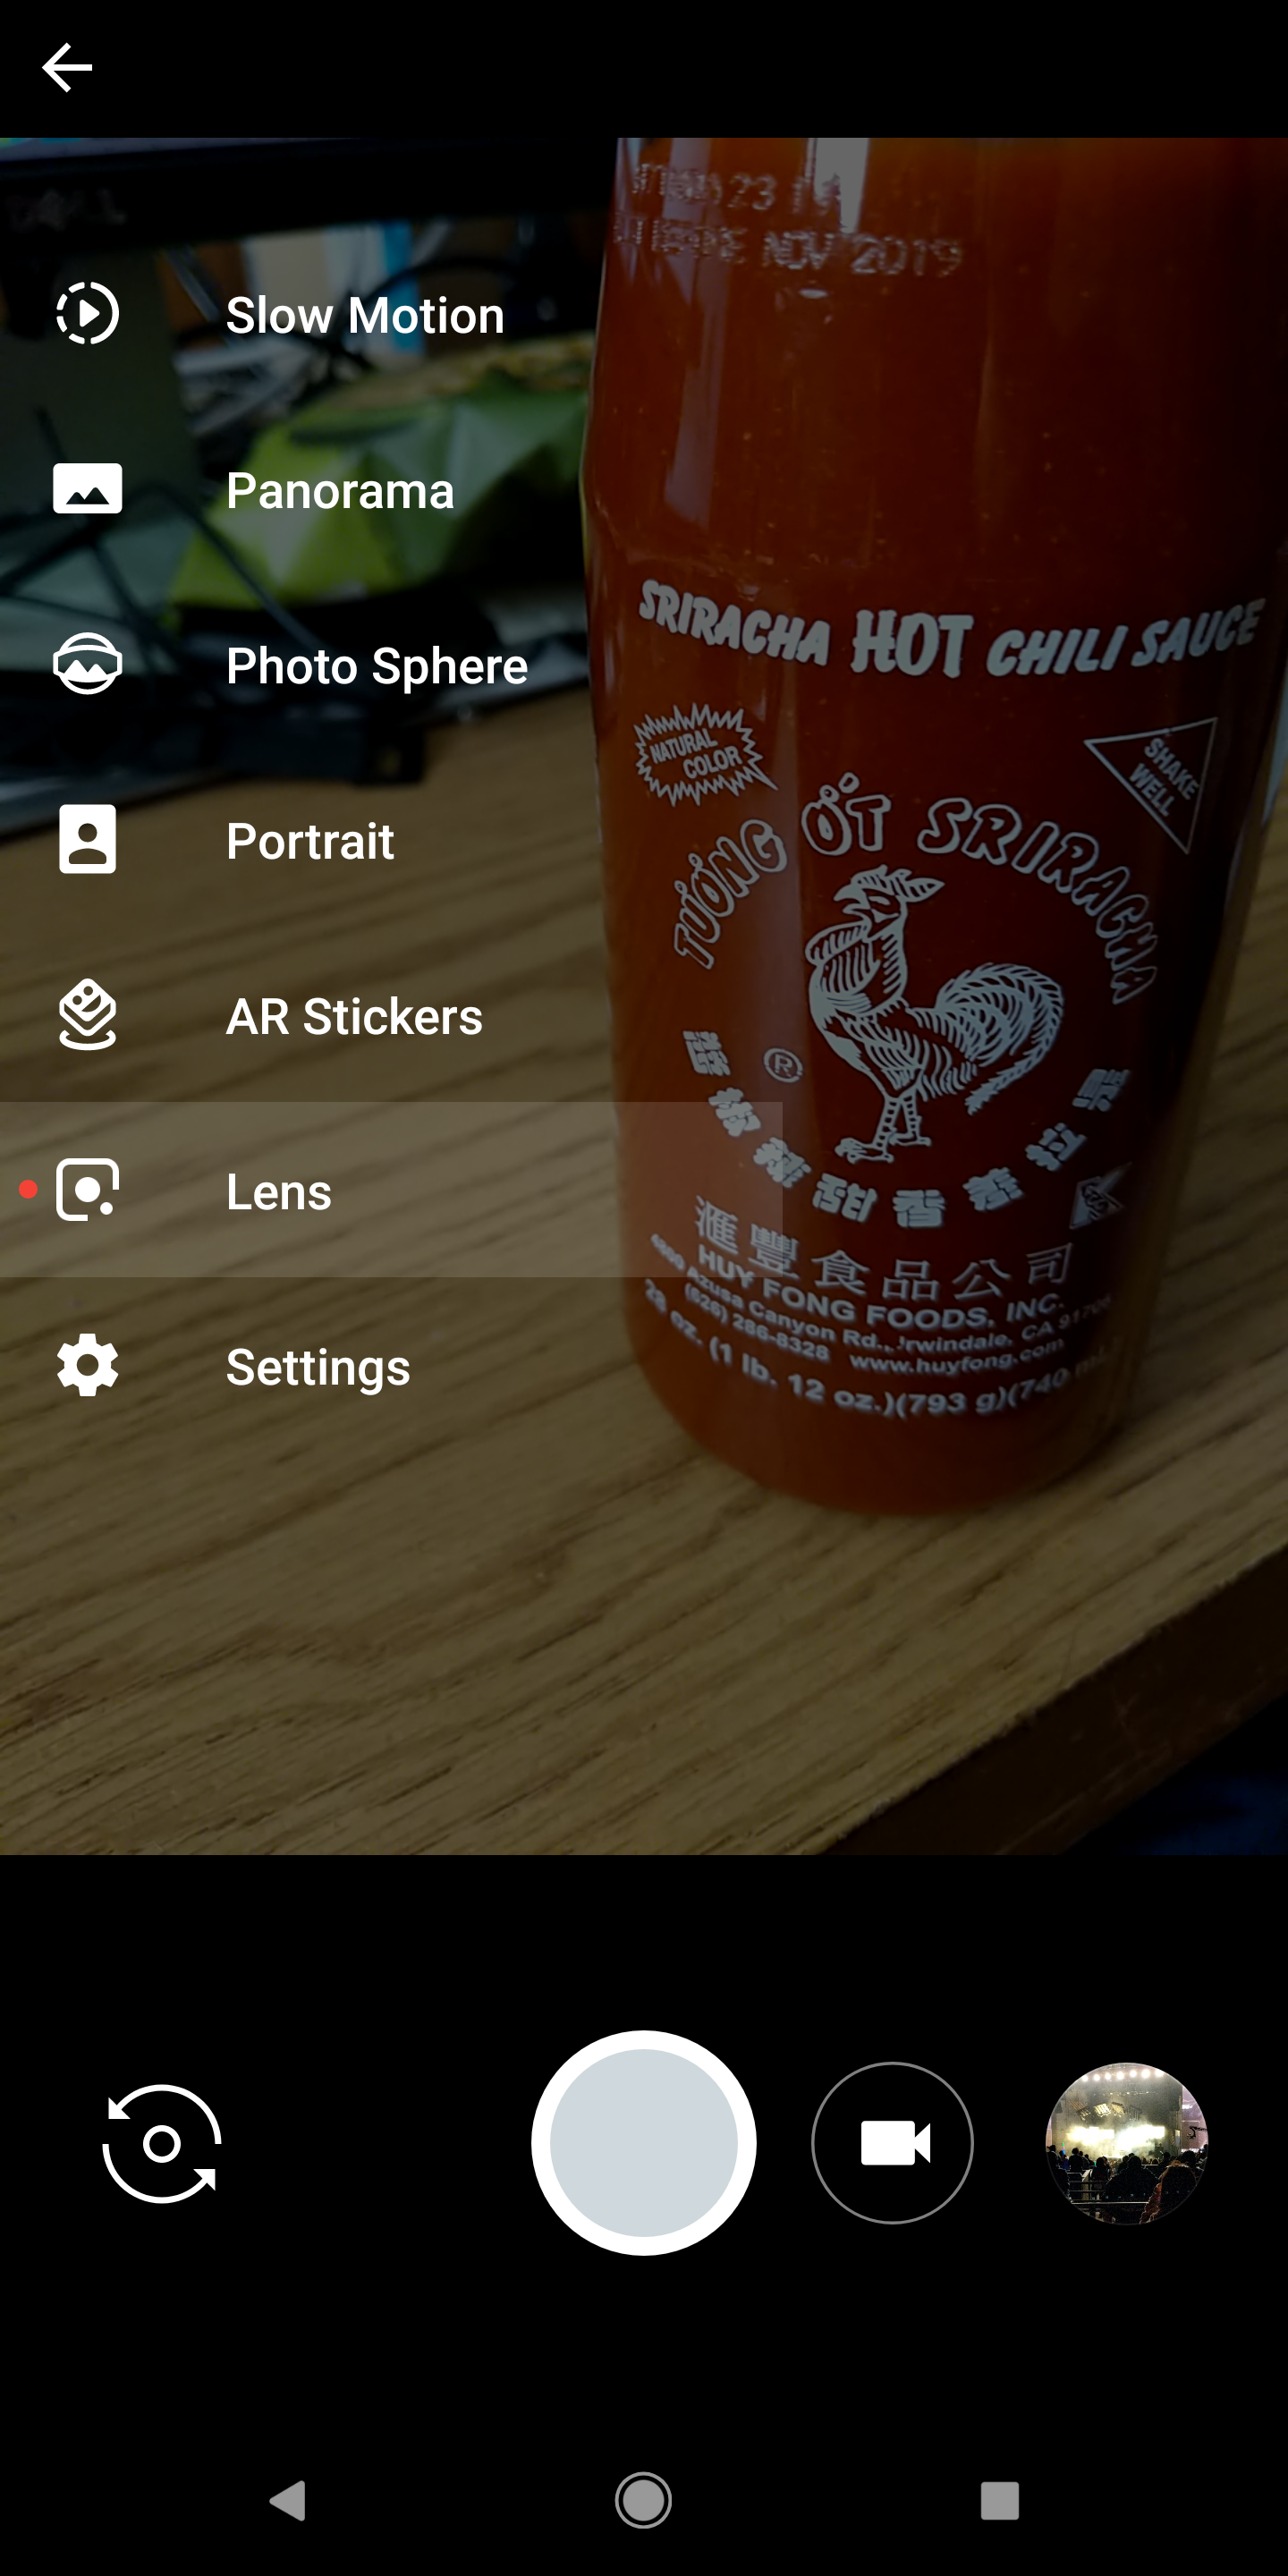 sony camera apk for redmi note 4